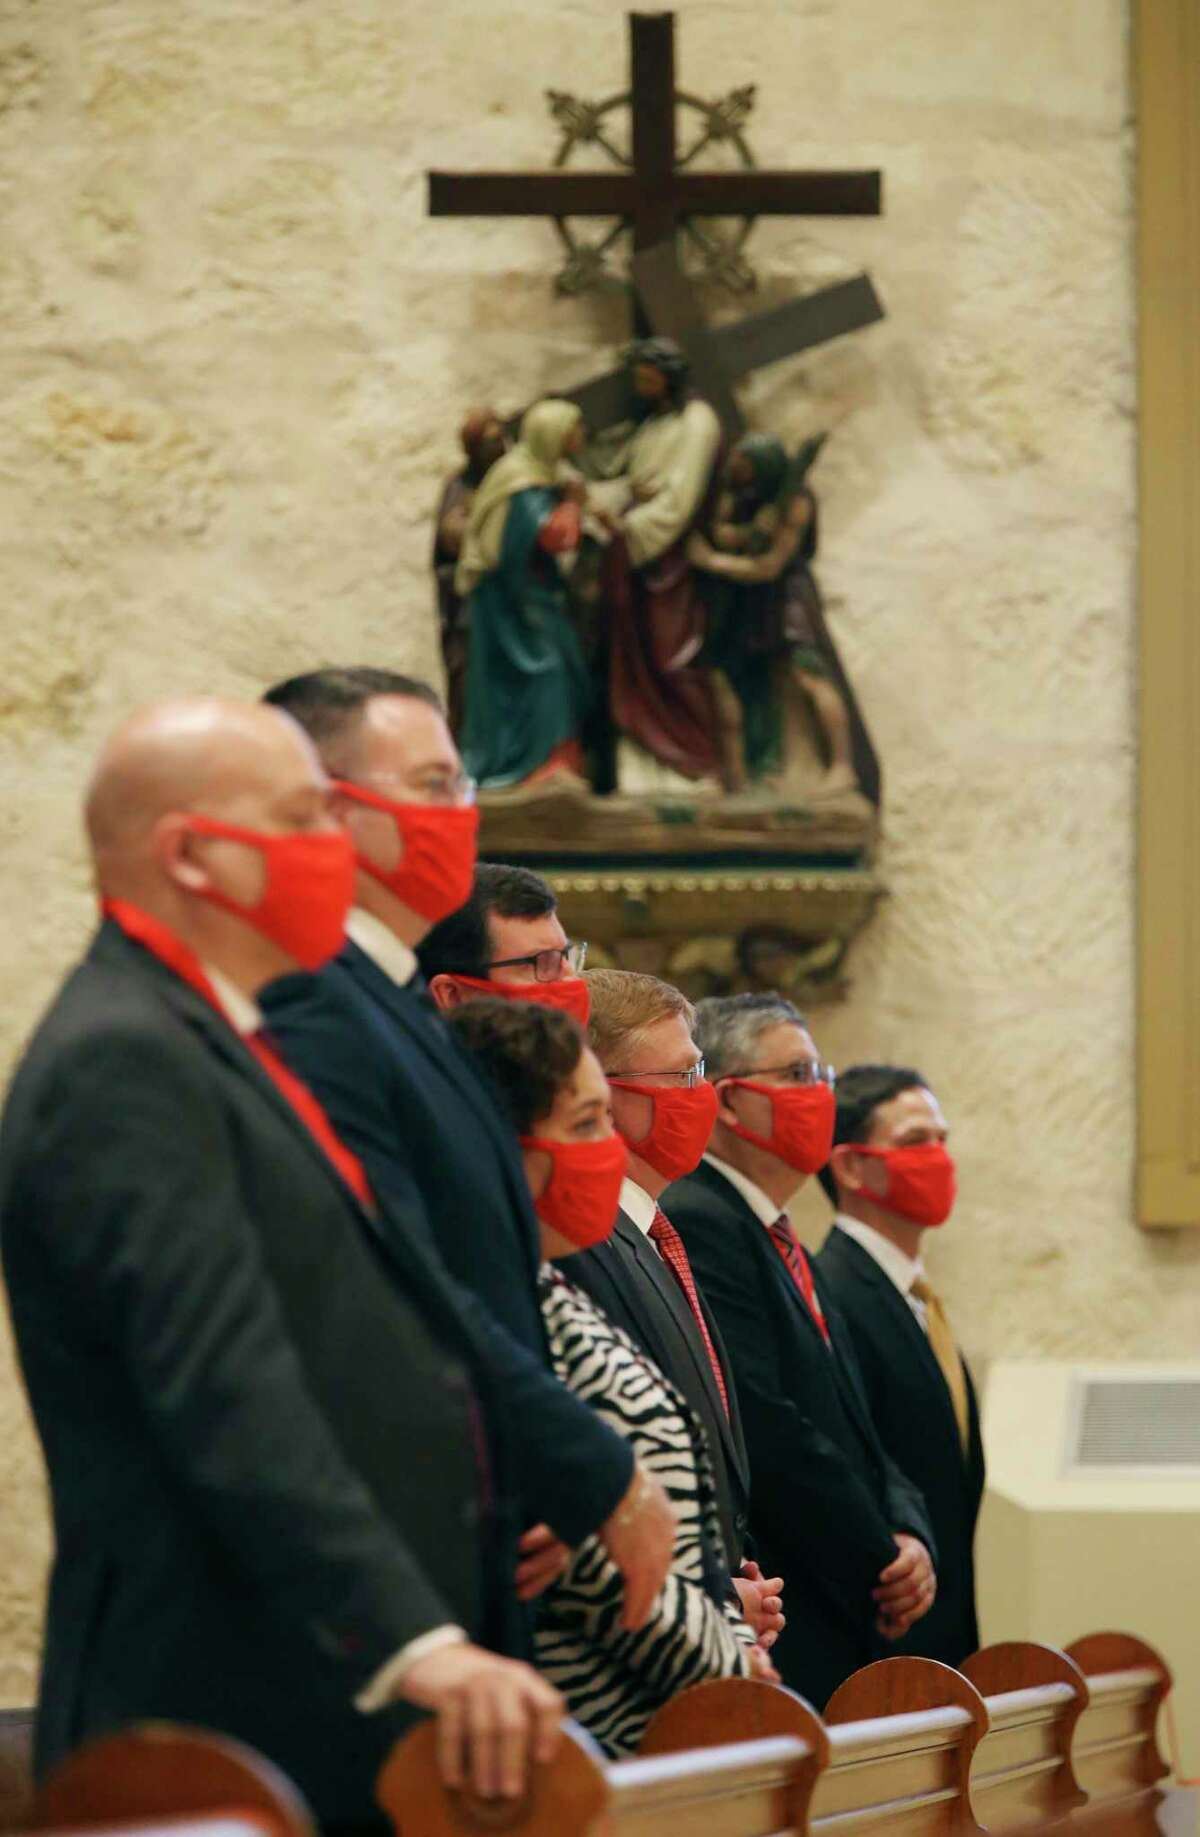 Members of the Catholic Lawyers Guild attend the Red Mass at San Fernando Cathedral on Thursday. Sponsored by the St. Mary's University School of Law, it is held each year to bless and guide the administration of justice.